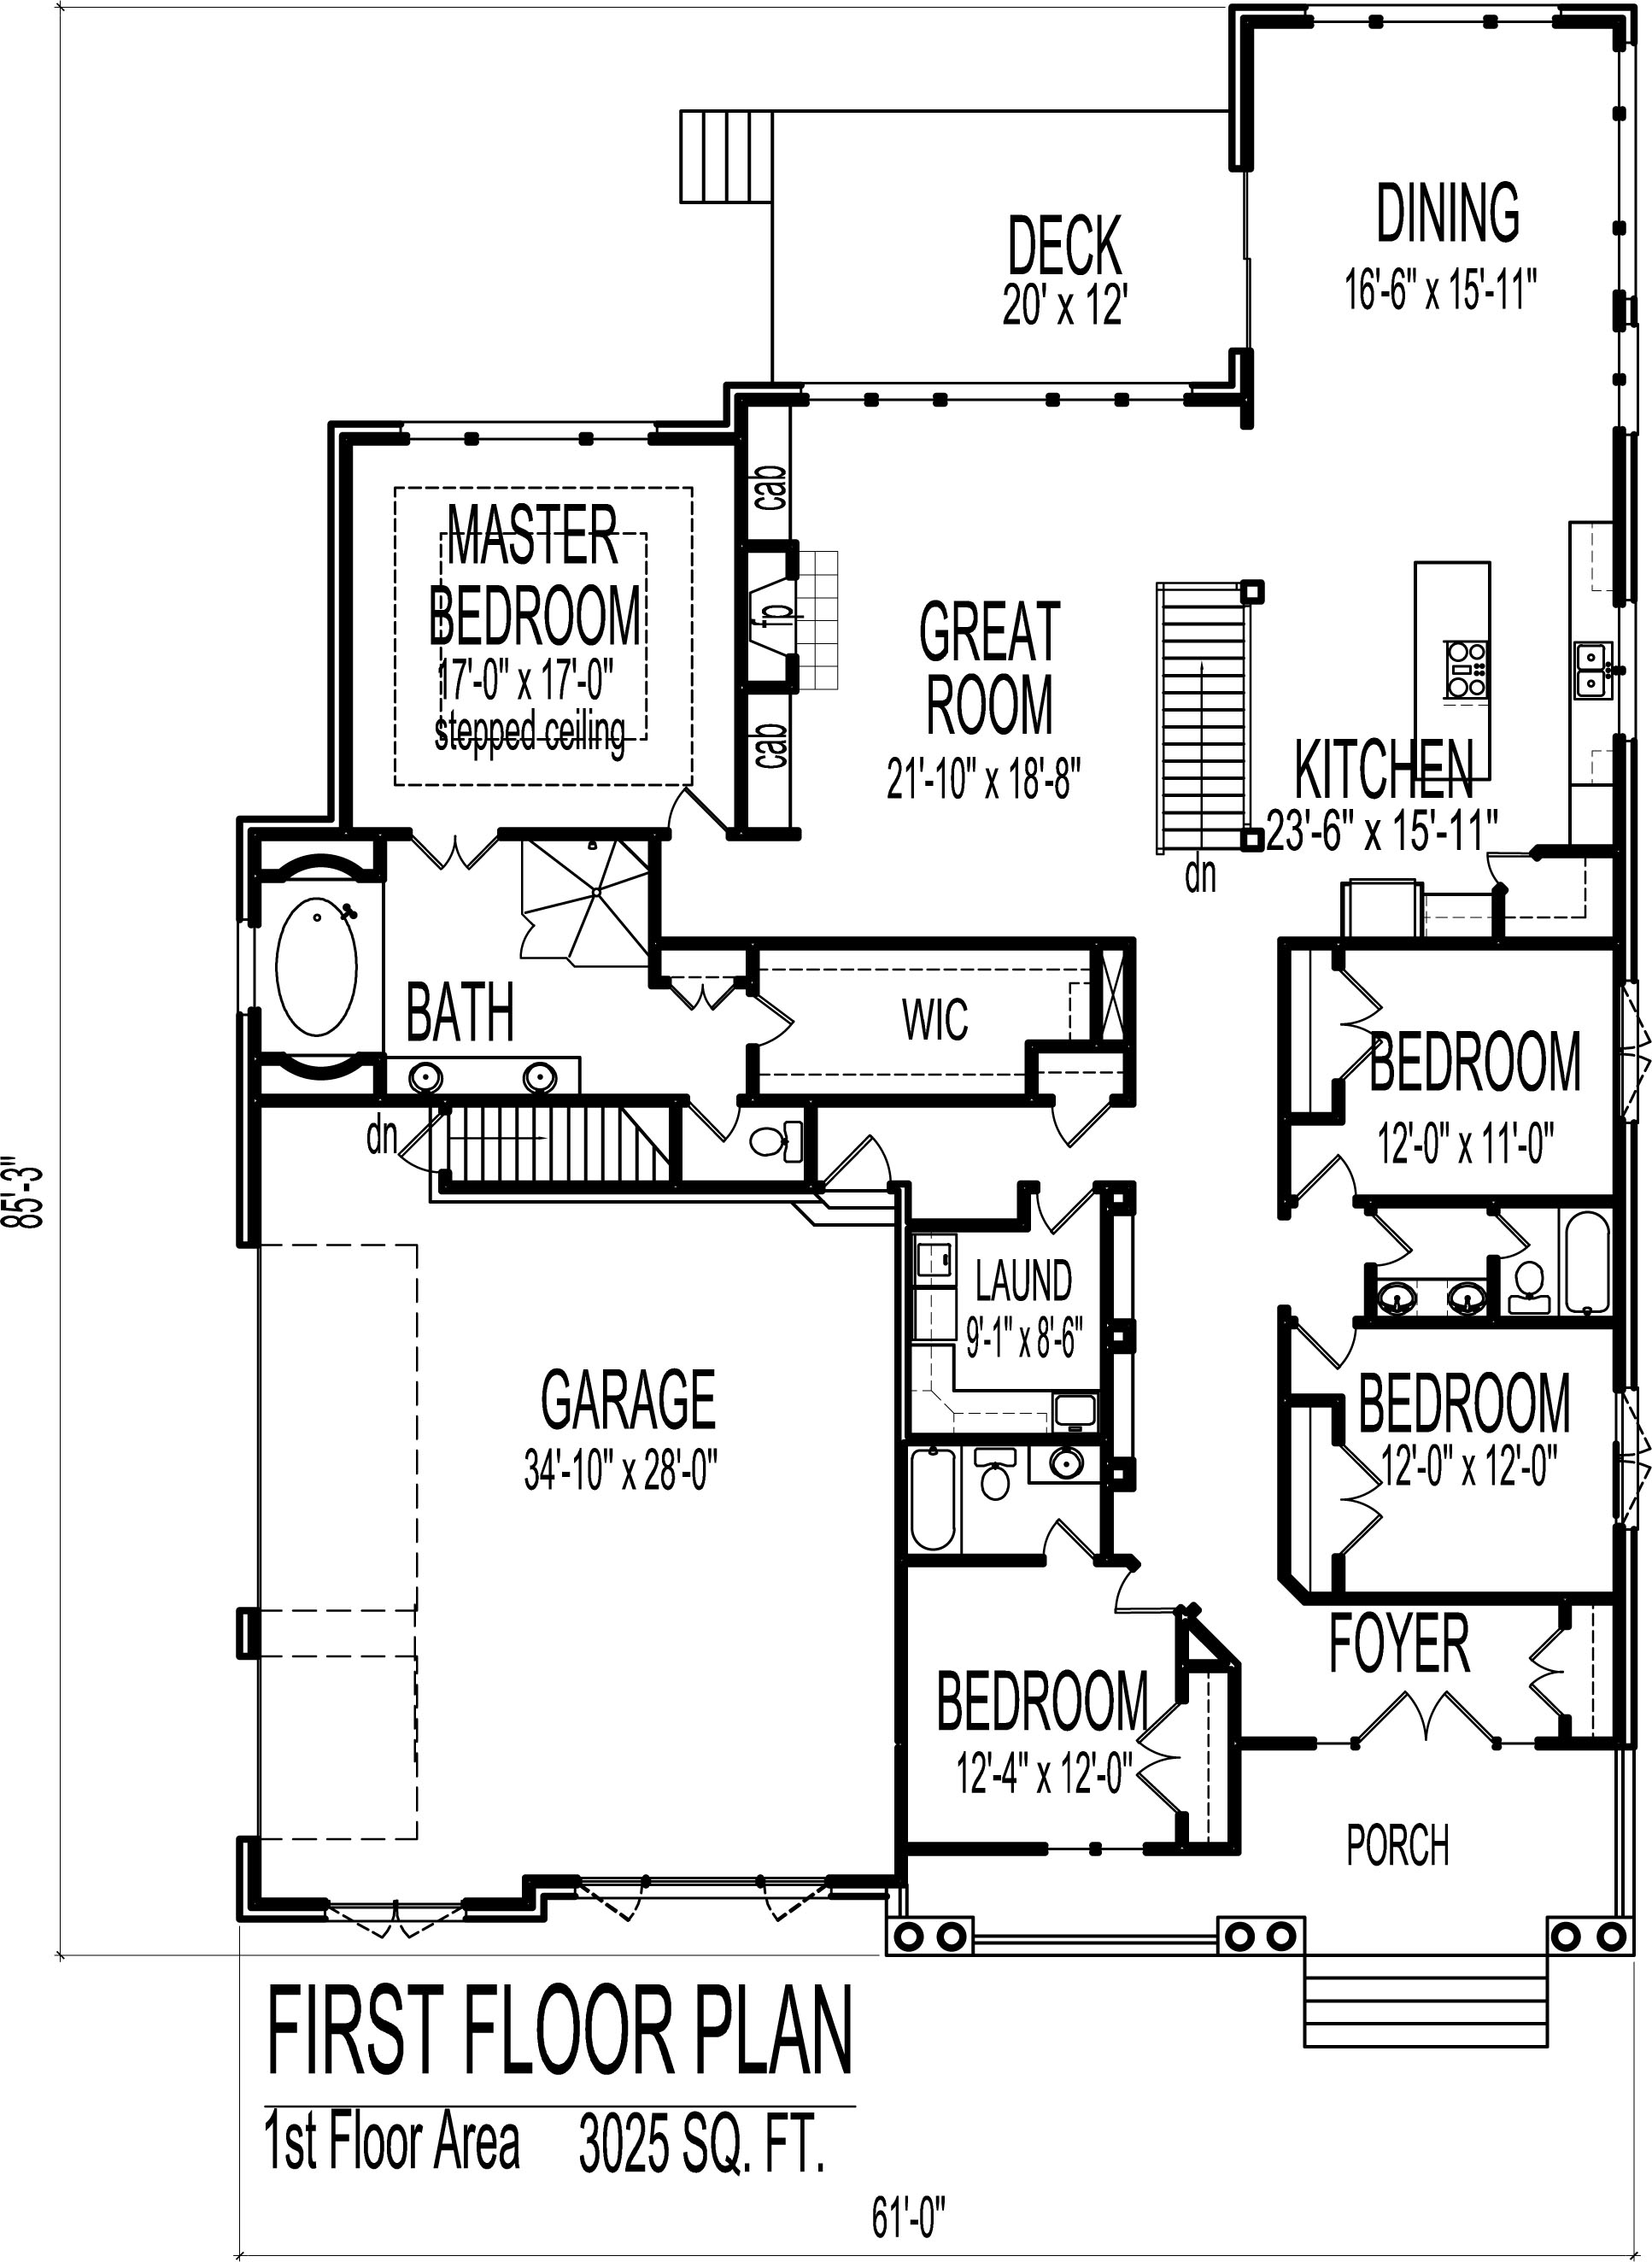 English cottage house floor plans european 4 bedroom 1 story ranch european cottage house design 3000 sf 4 bedroom 3 bath baement 3 car garage chicago peoria malvernweather